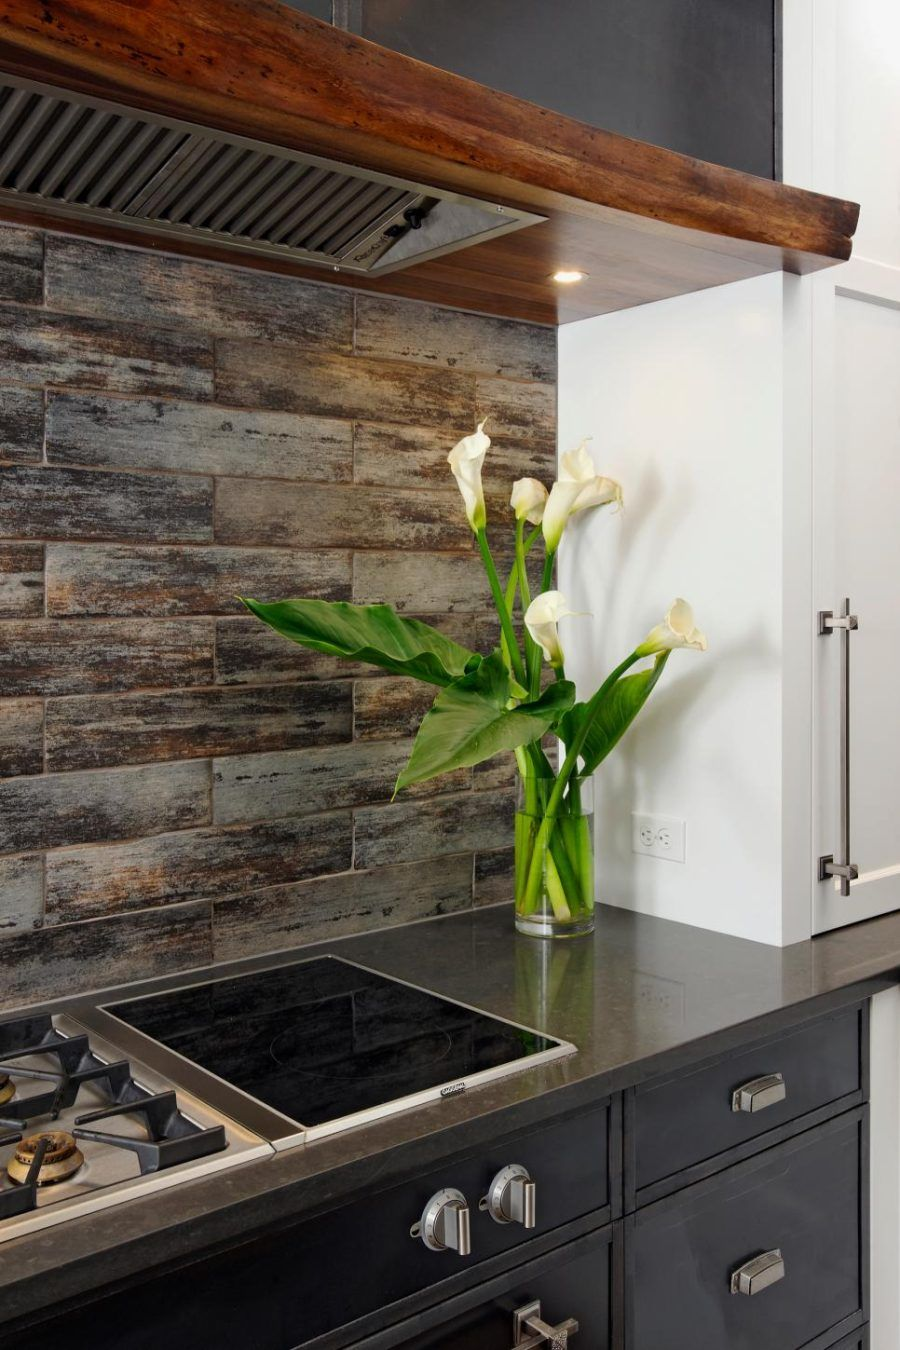 Wood Look Tile Ideas For Every Room In Your House Rustic Kitchen